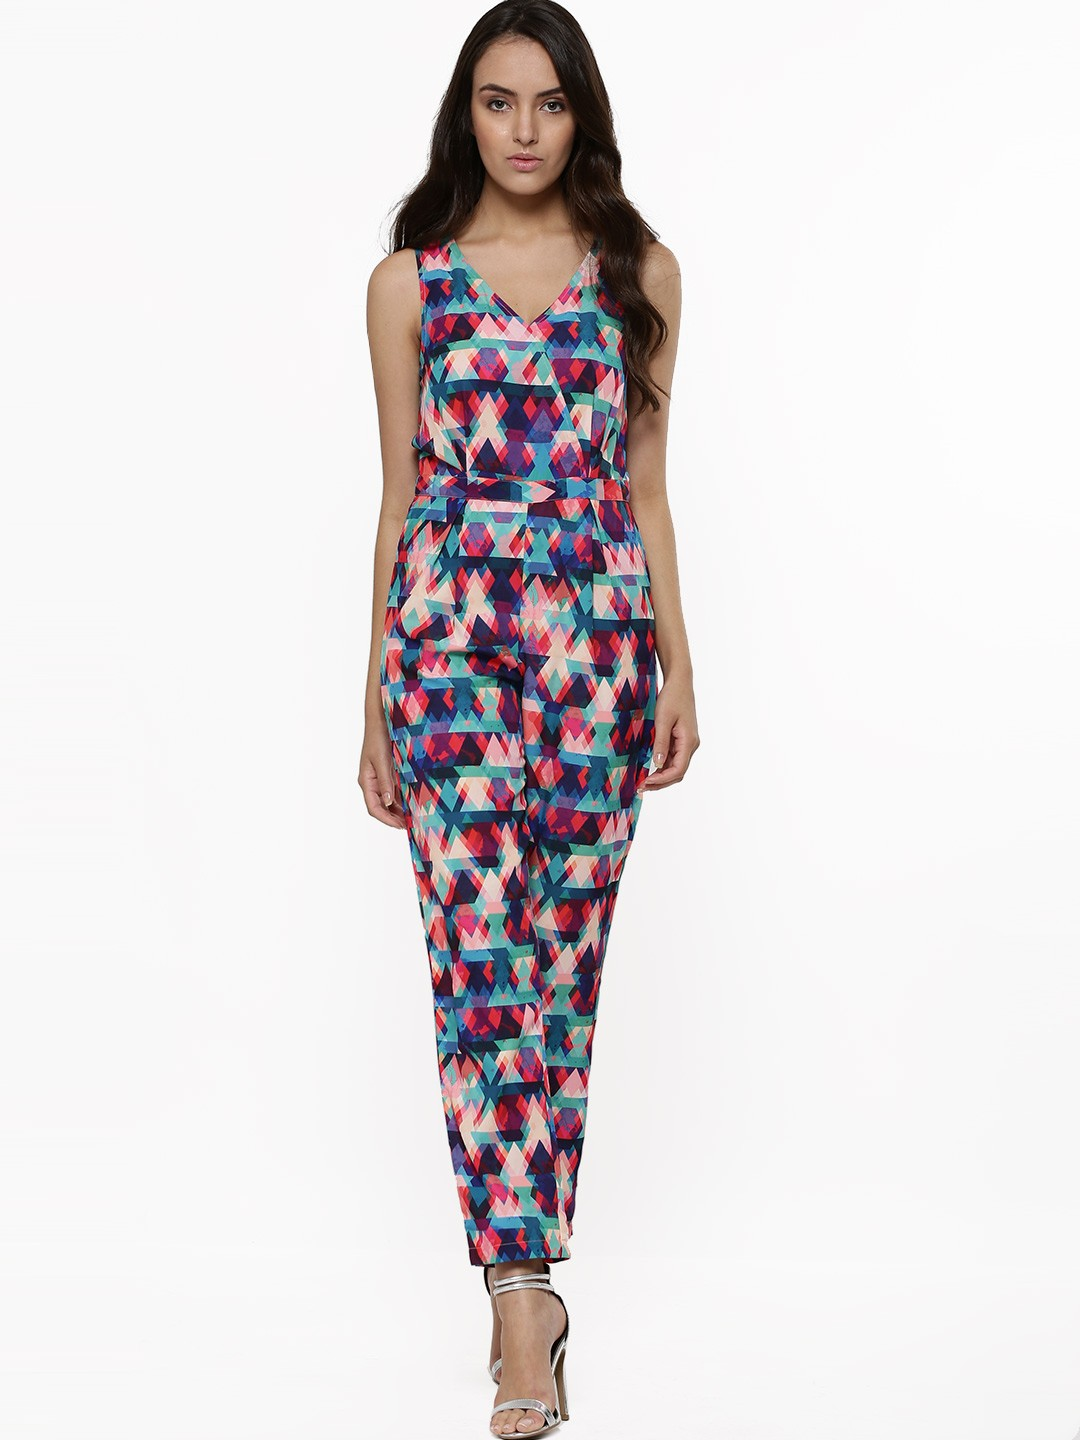 Buy VERO MODA Printed Jumpsuit For Women - Womenu0026#39;s Multi Jumpsuits Online In India